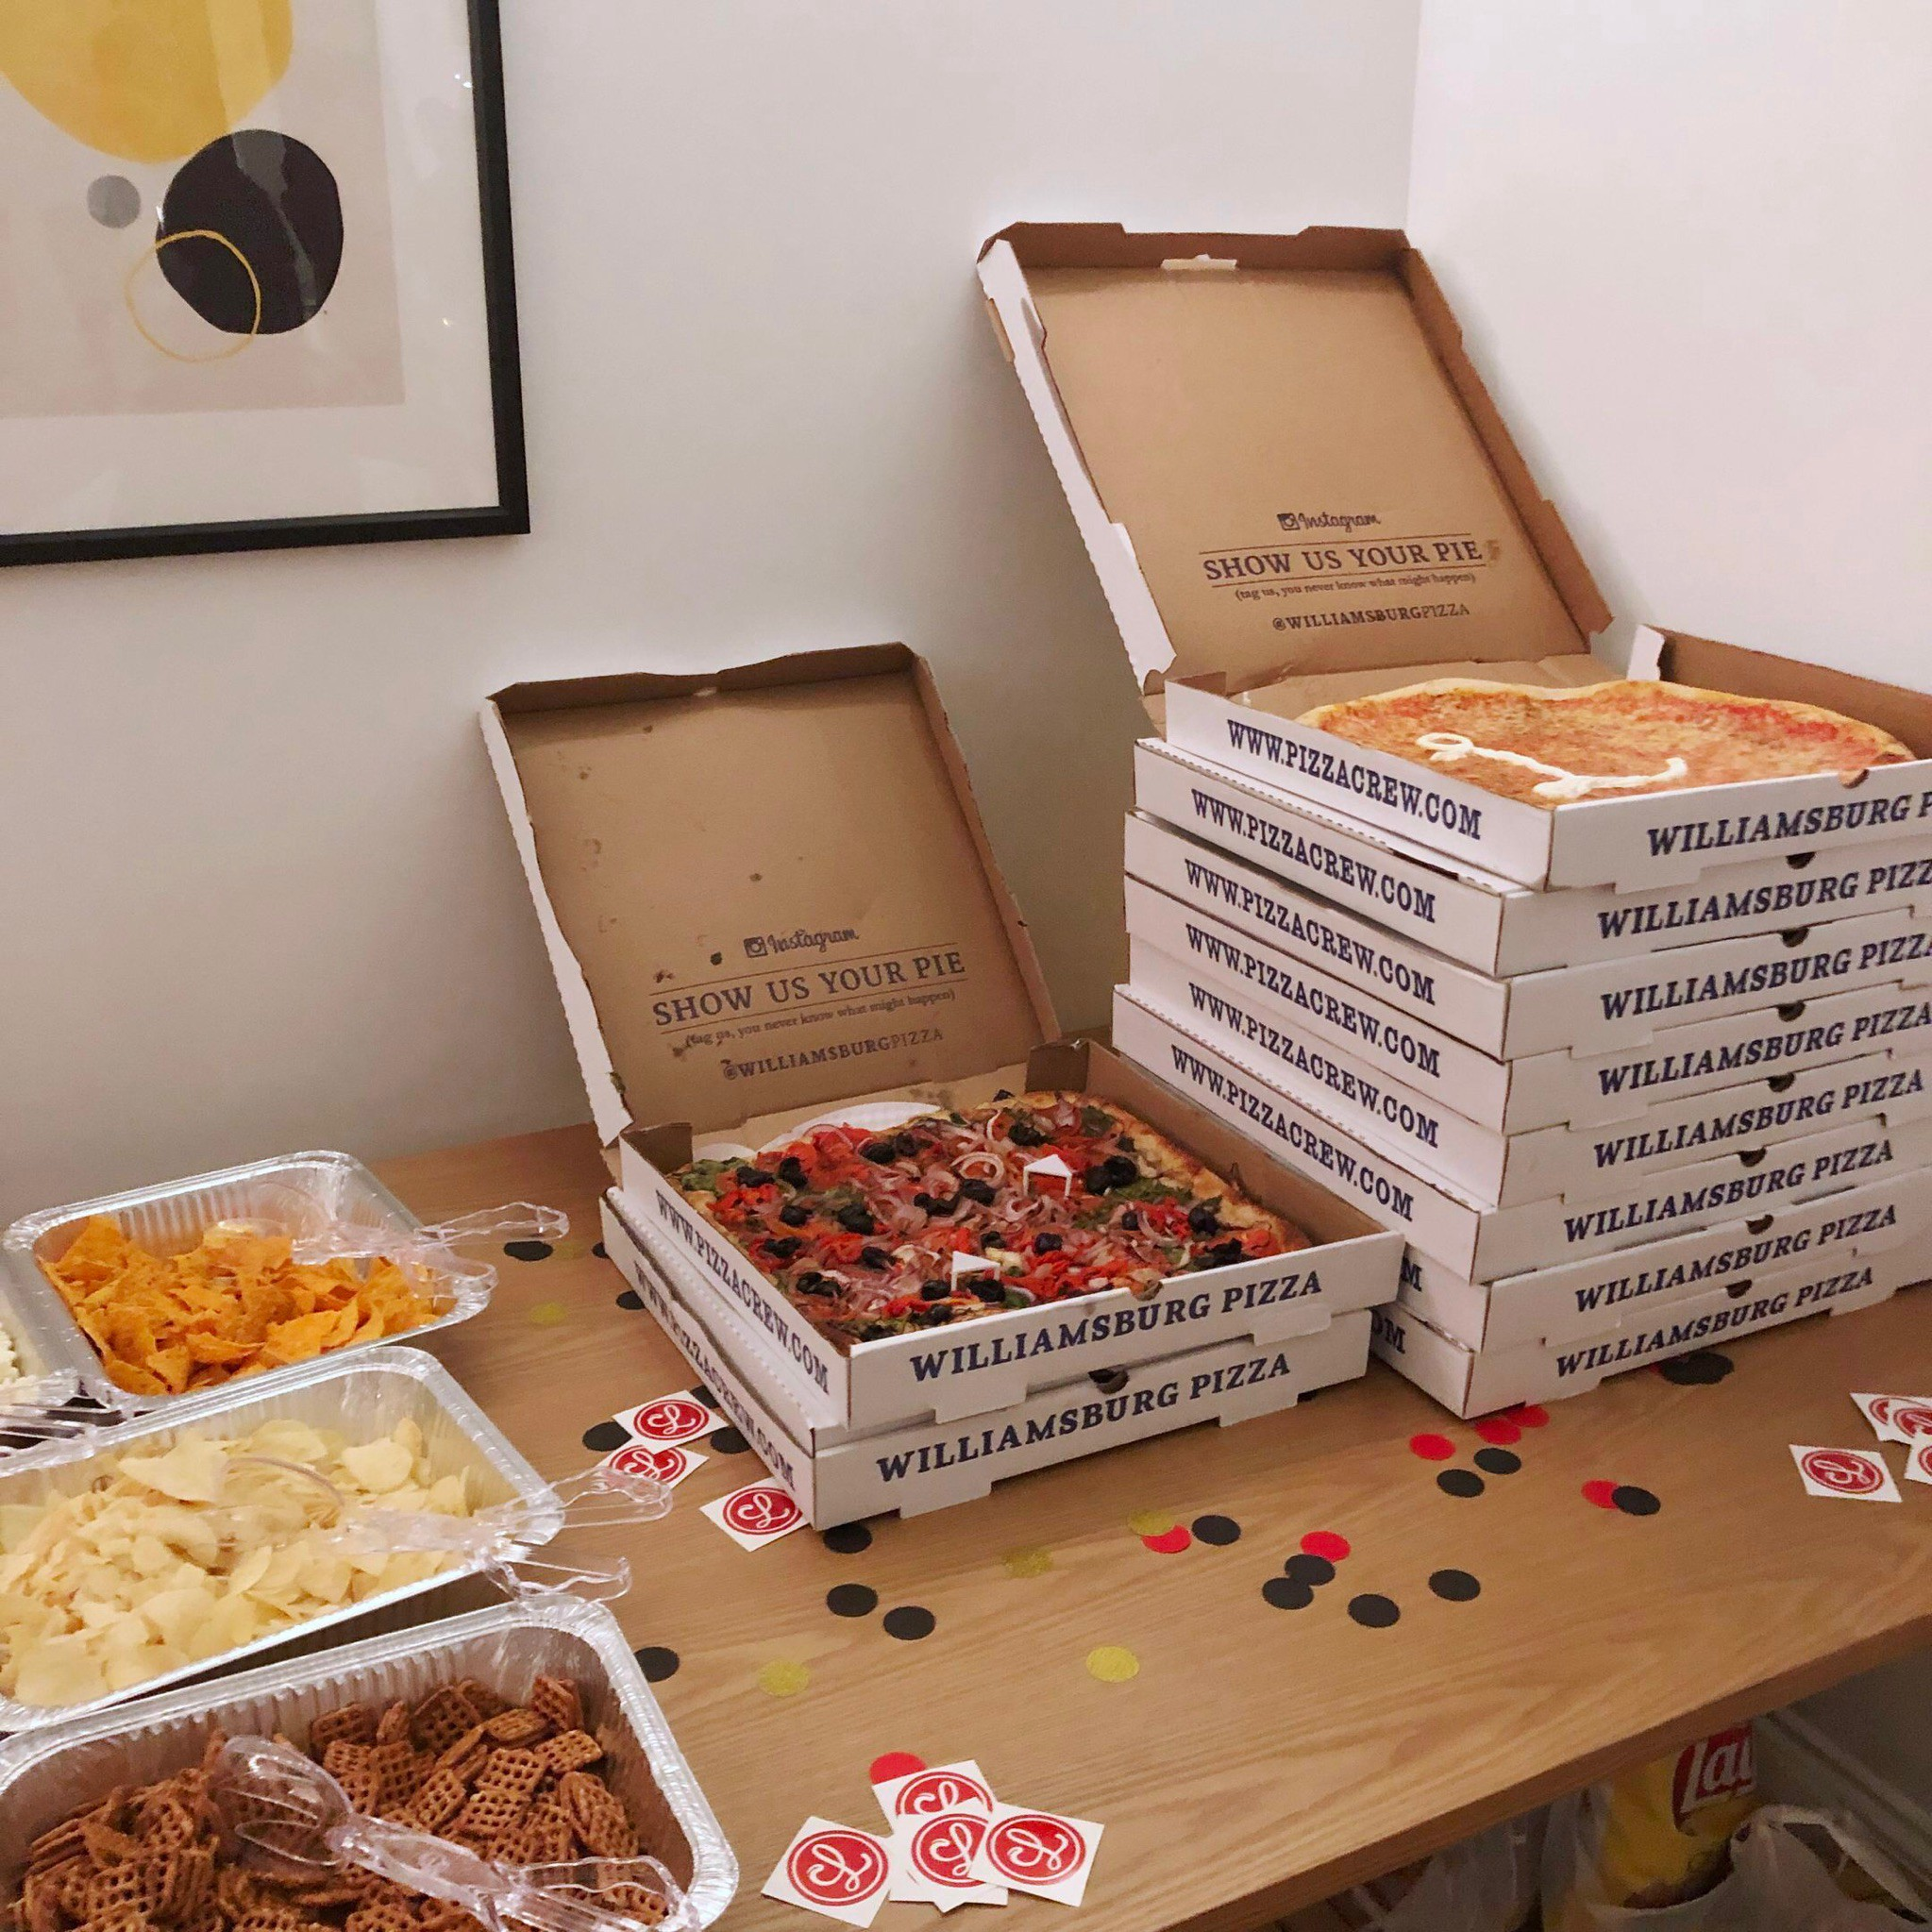 Boxes of pizza sitting on a table next to some snacks.